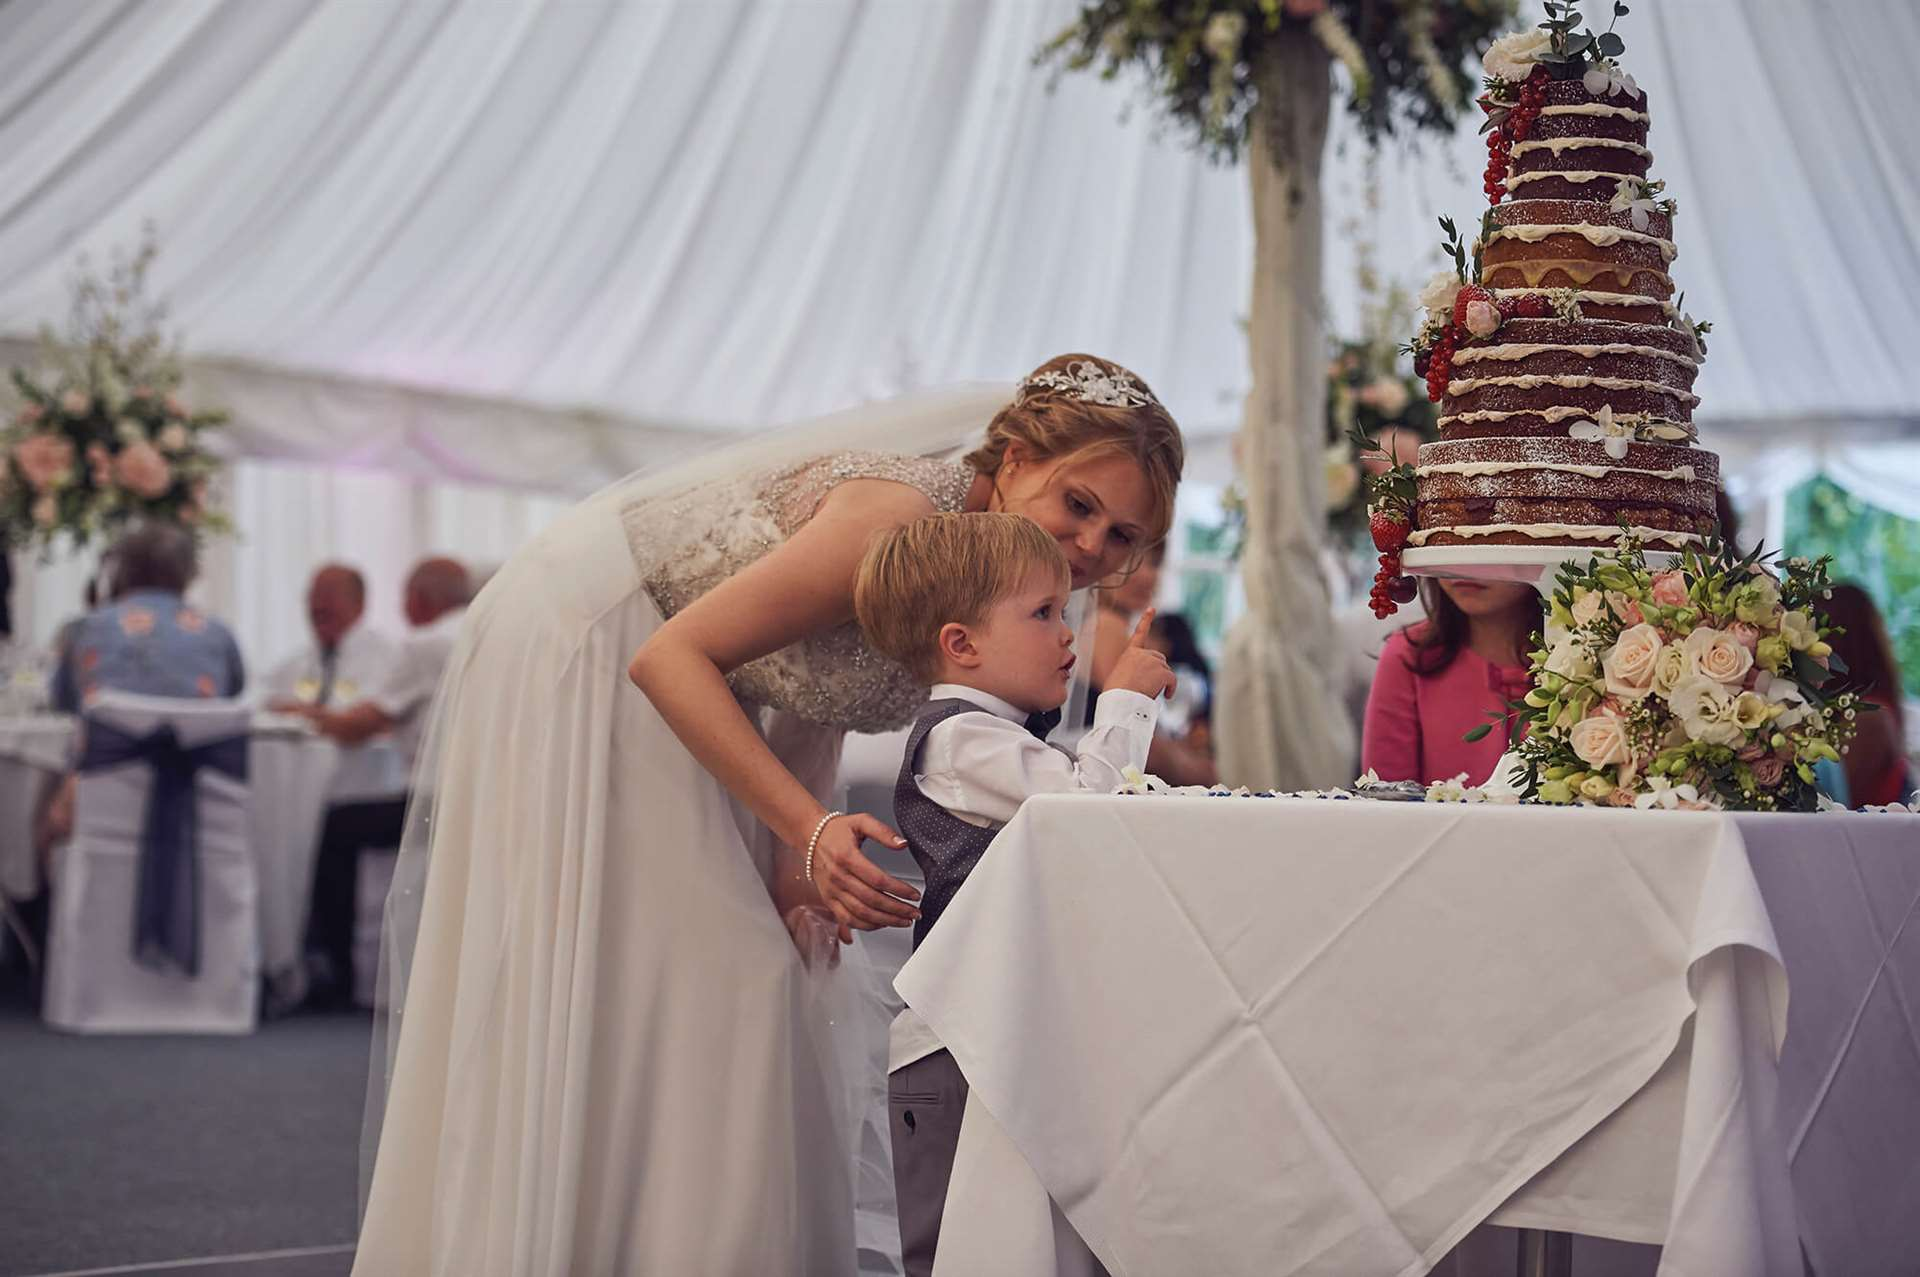 How to choose your ideal wedding cake